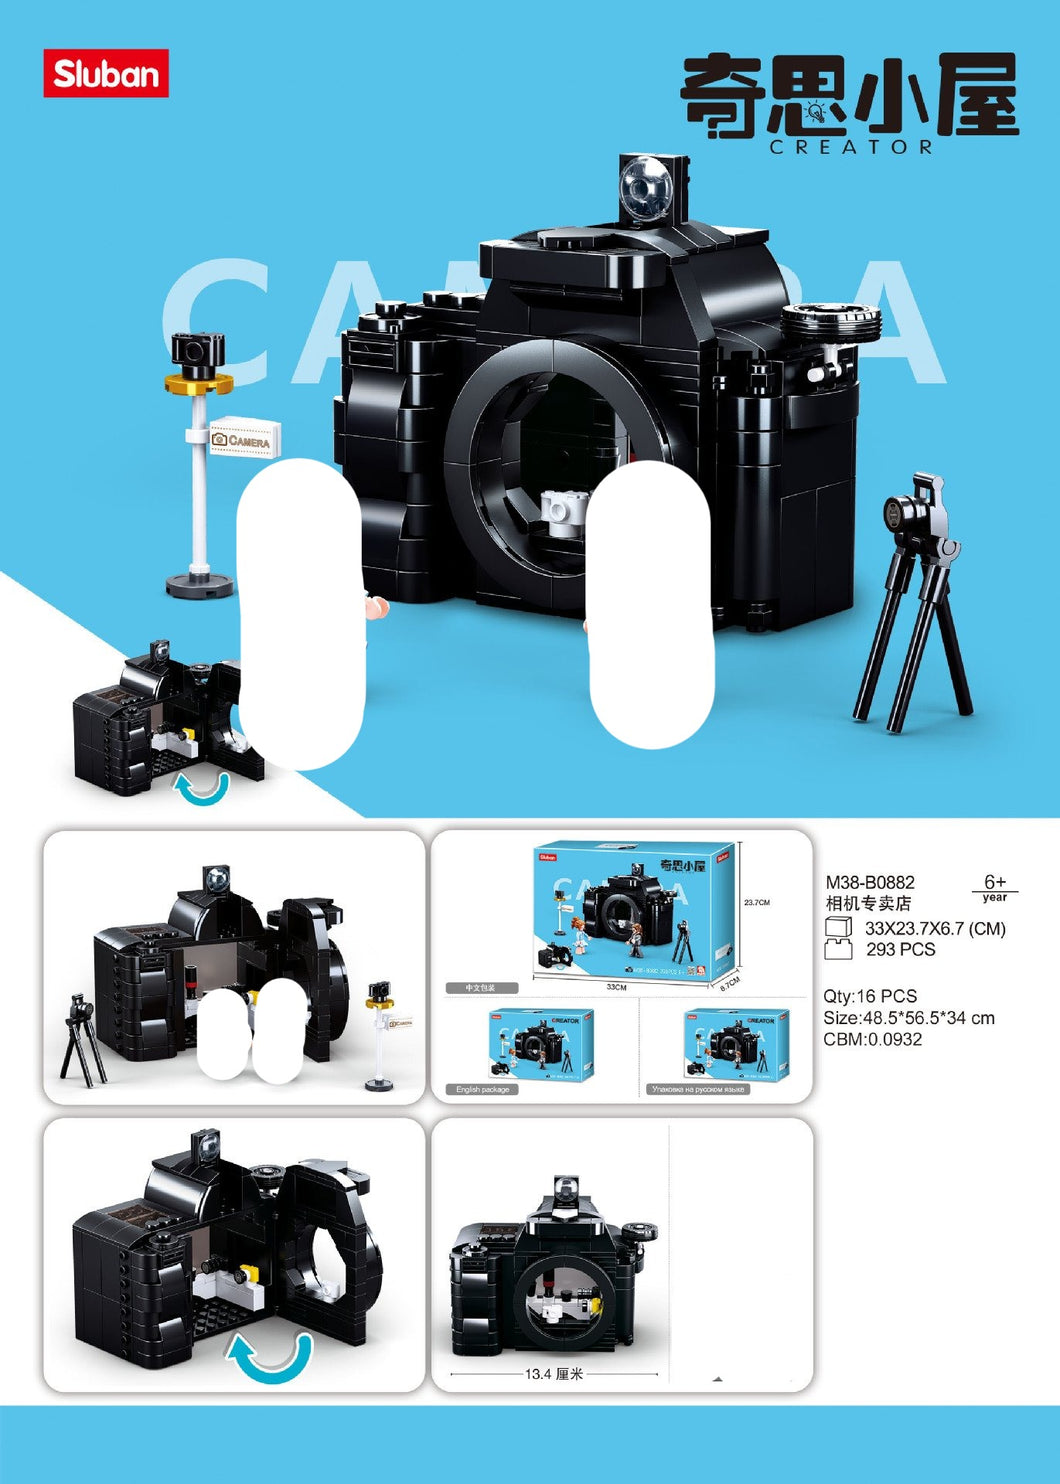 Sluban Camera Shop | B0882